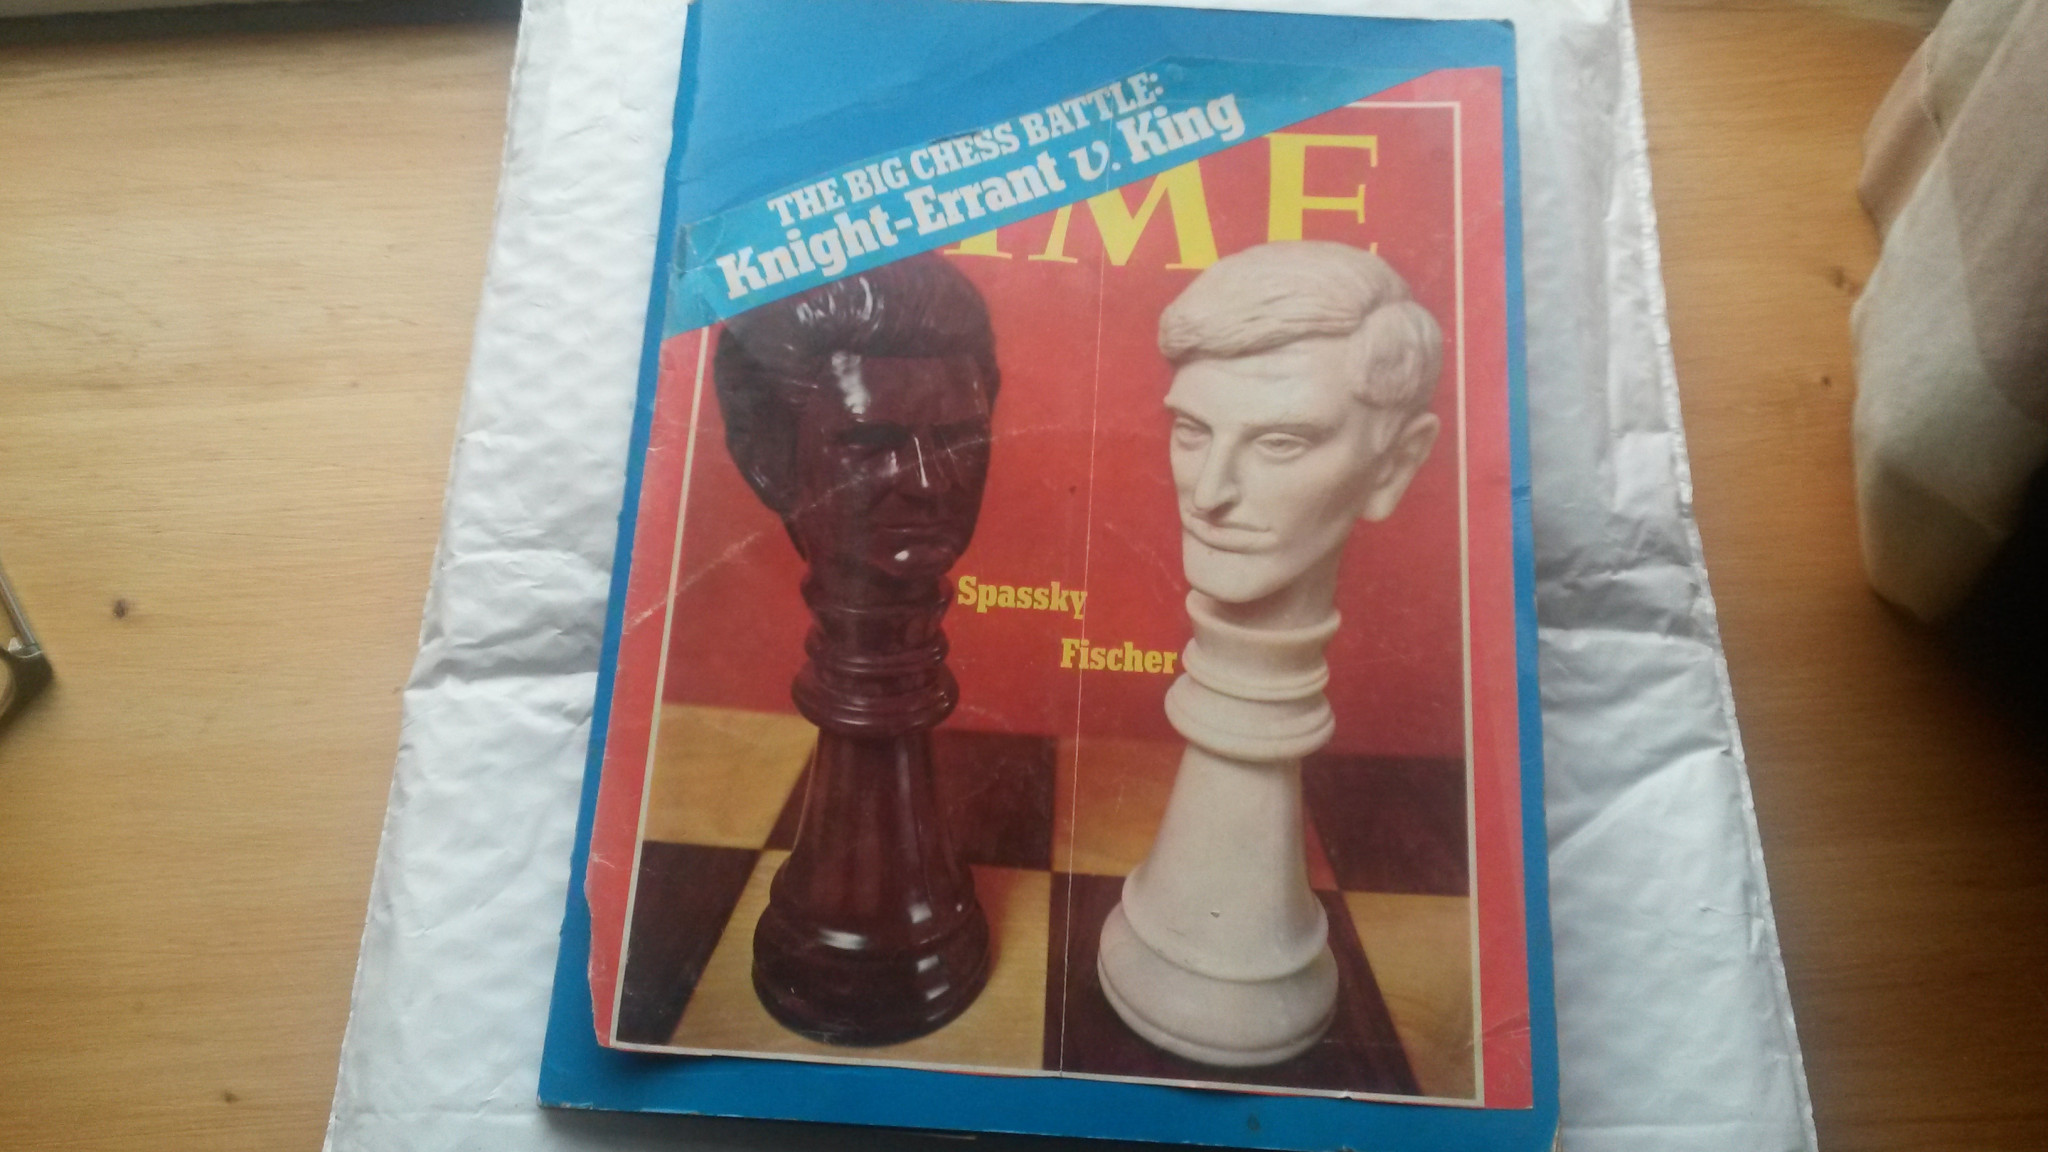 How Time viewed the impending chess